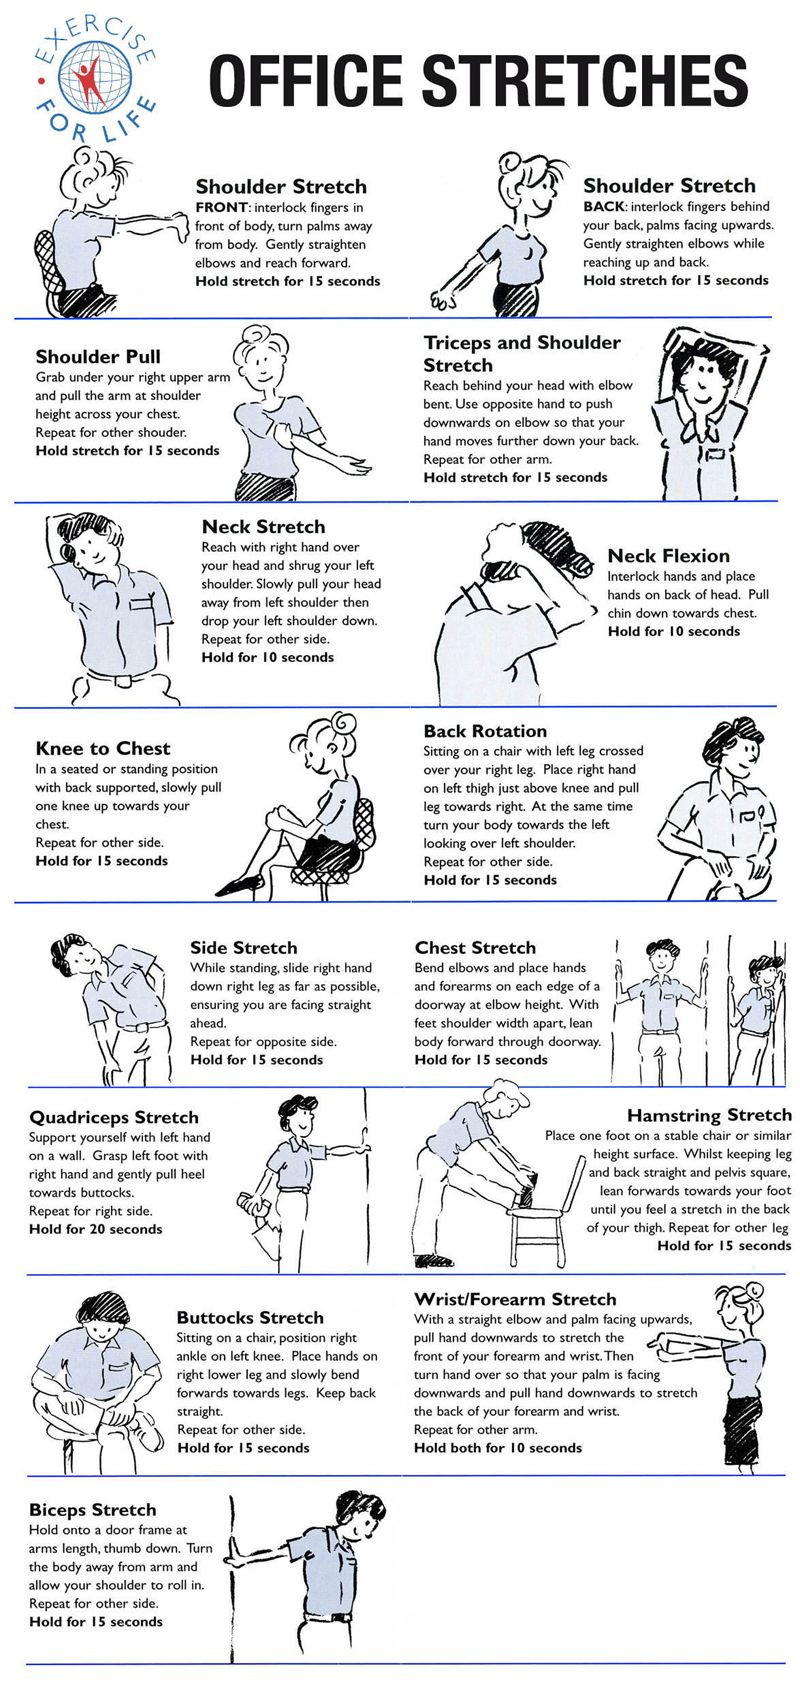 Occupational Therapy Office Stretches Http Www Exerciseforlife